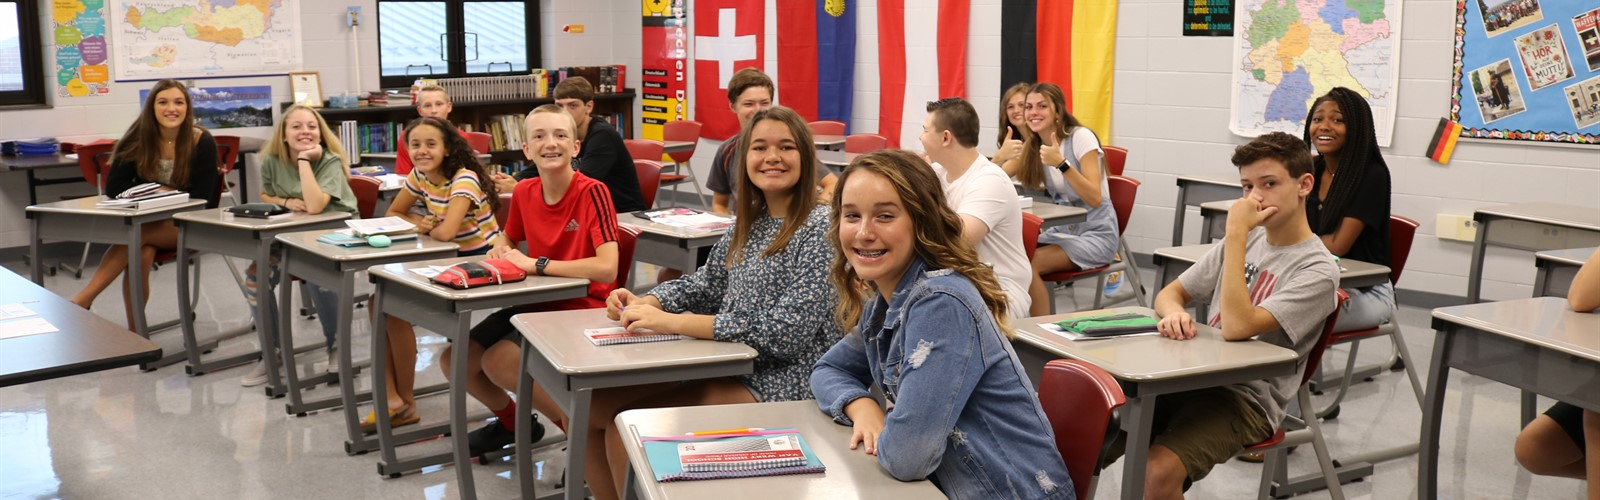 High school students gather in the German classroom on the first day of school